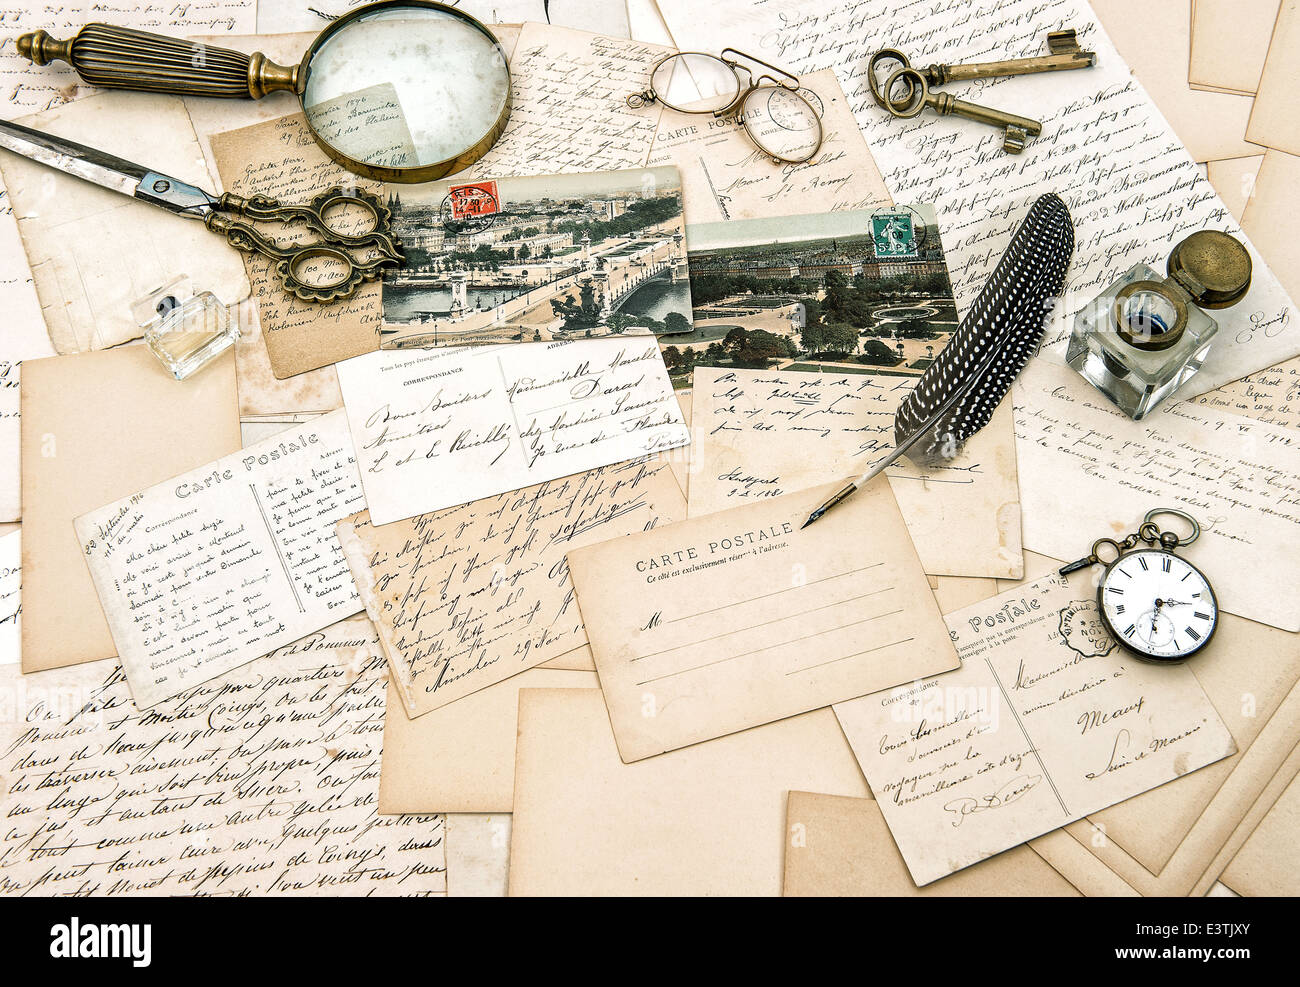 Old Handwritten French Letters And Postcards, Vintage Office Accessories.  Nostalgic Paper Background